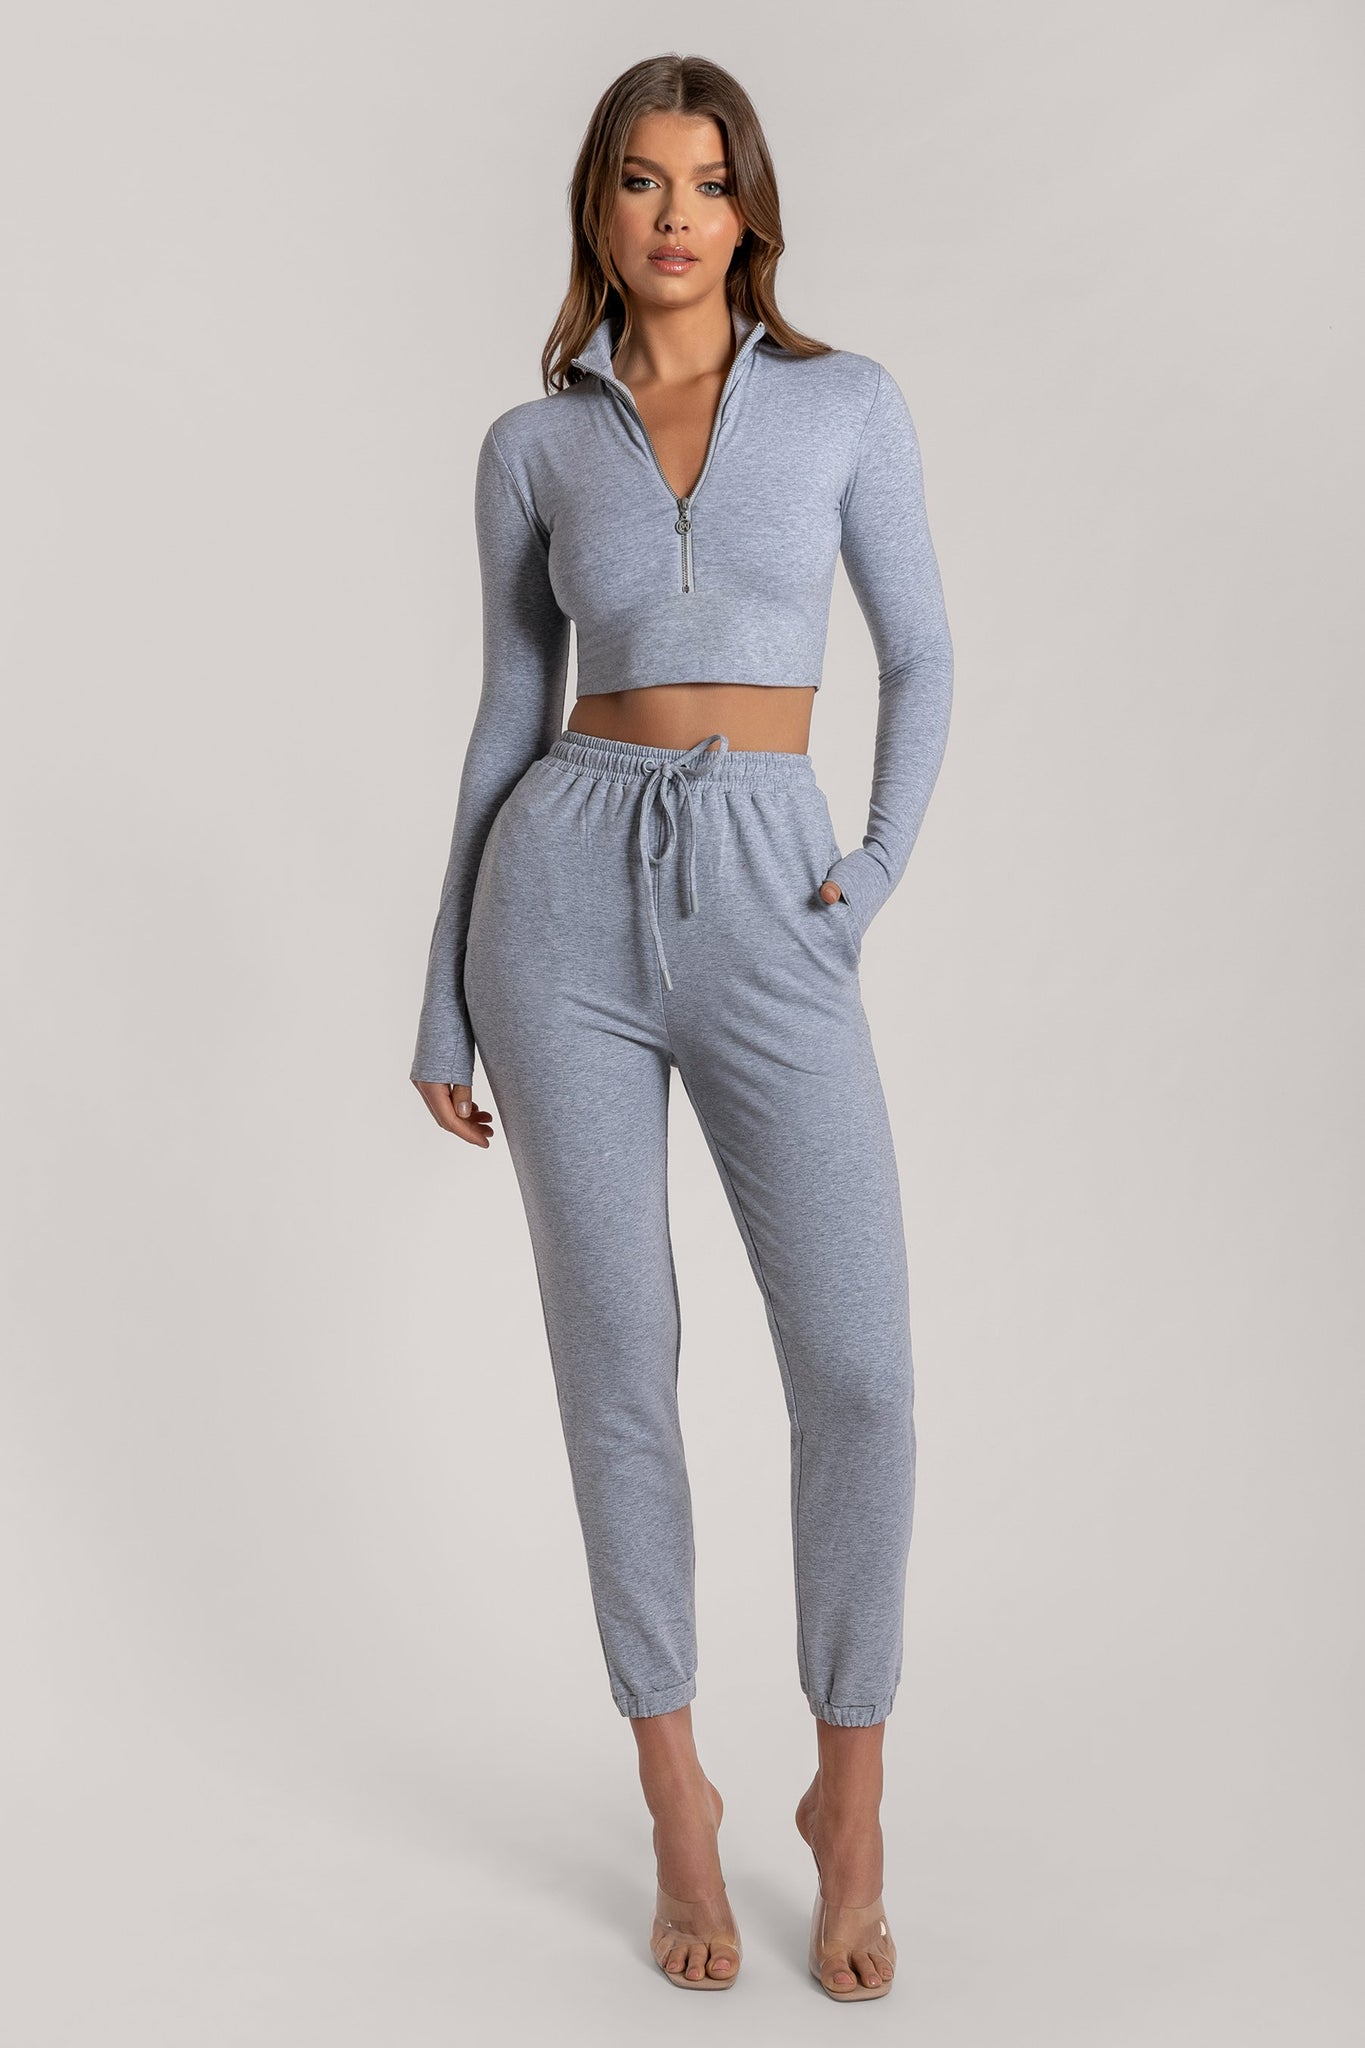 Ashlea Long Sleeve Zip Up Crop Top - Grey Marle - MESHKI